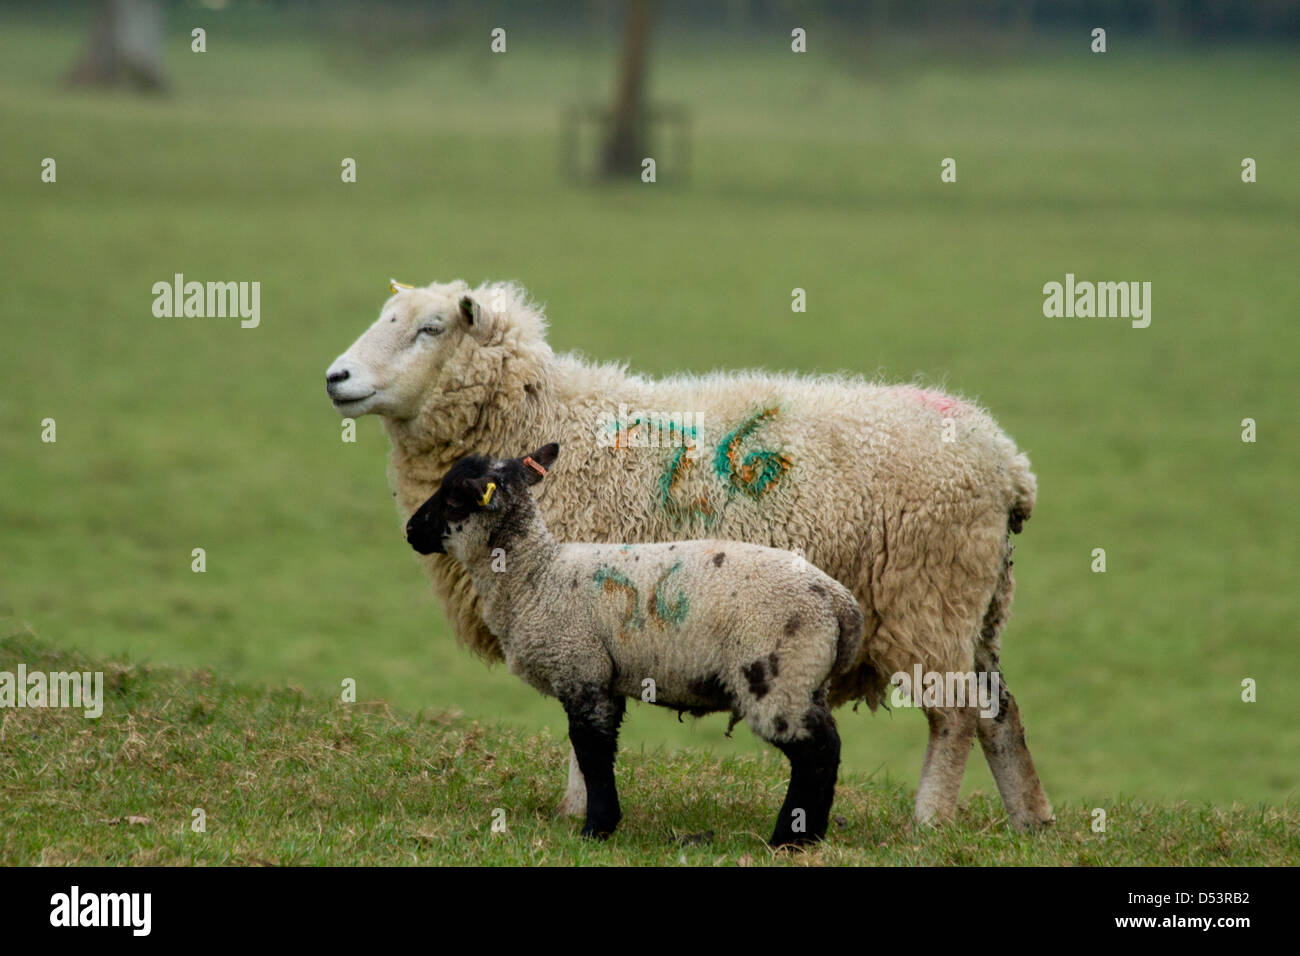 Ewe with her young lamb - Stock Image